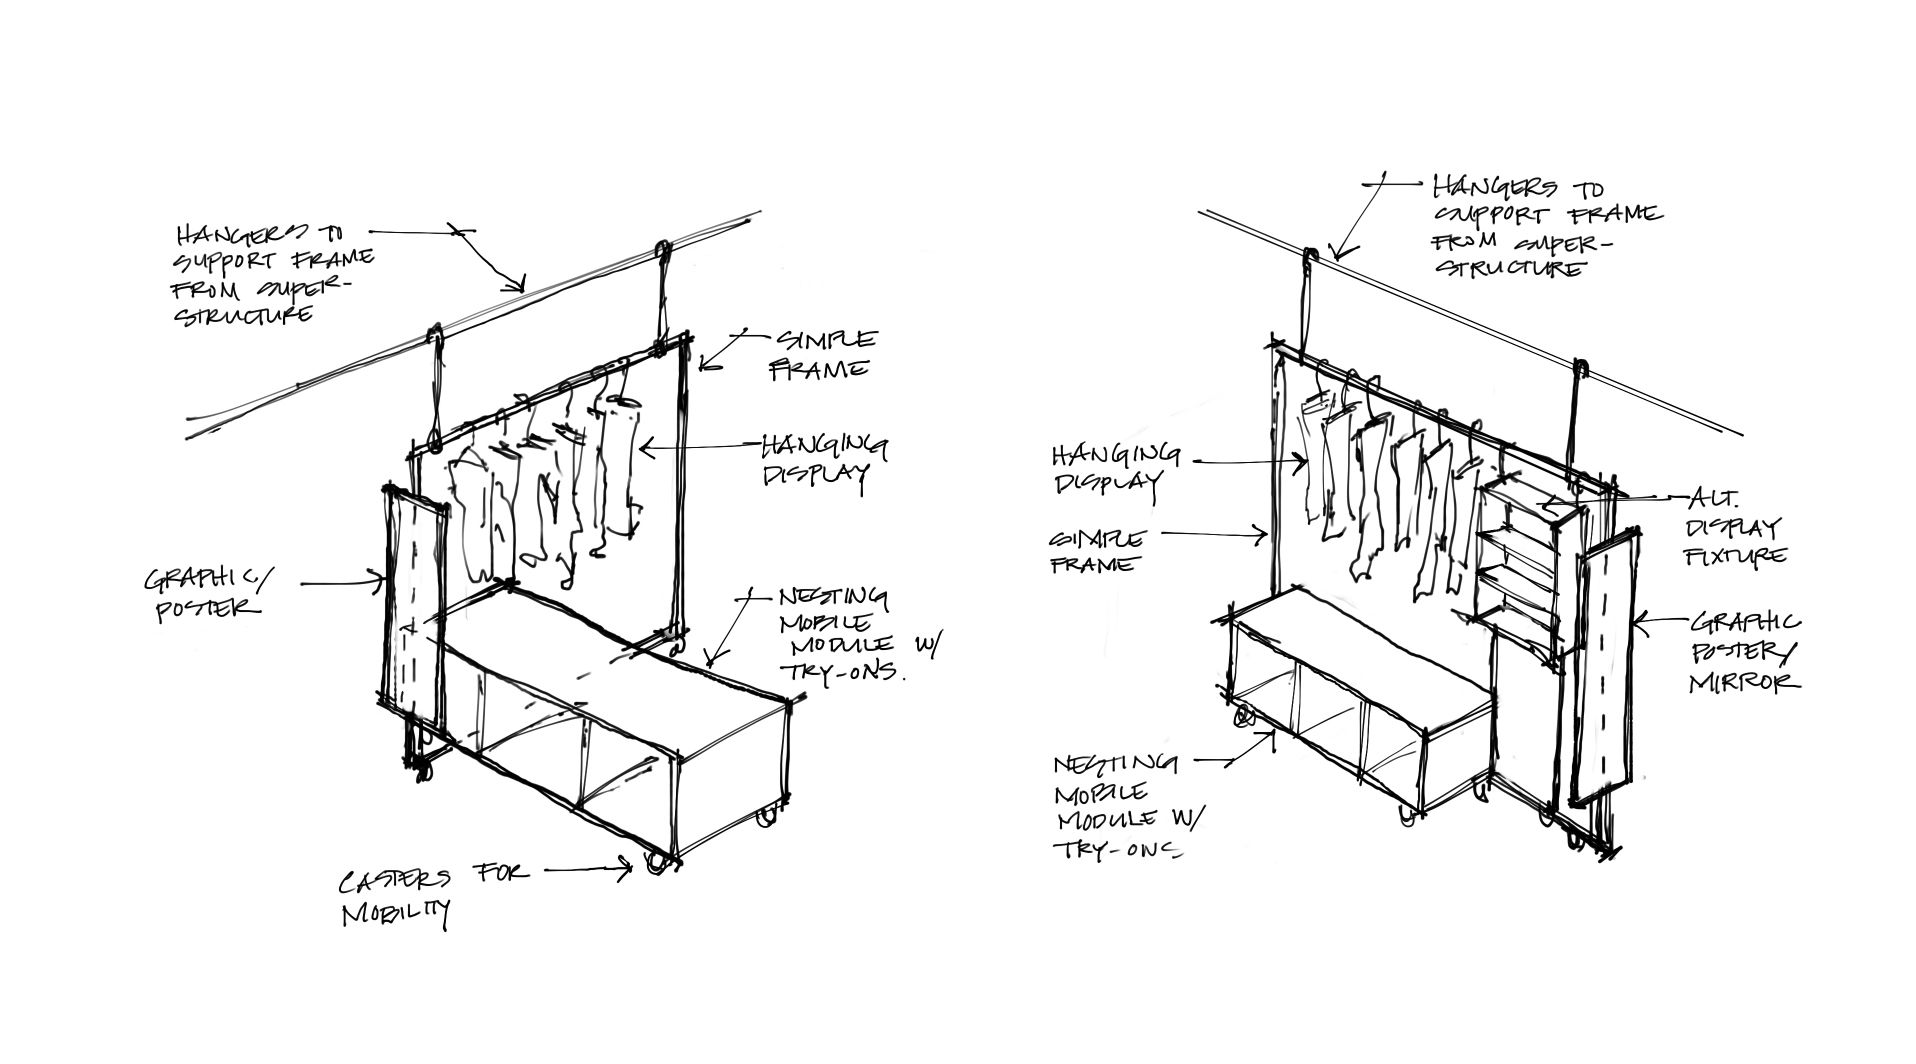 Fixture design concept sketch for a retail concept in Los